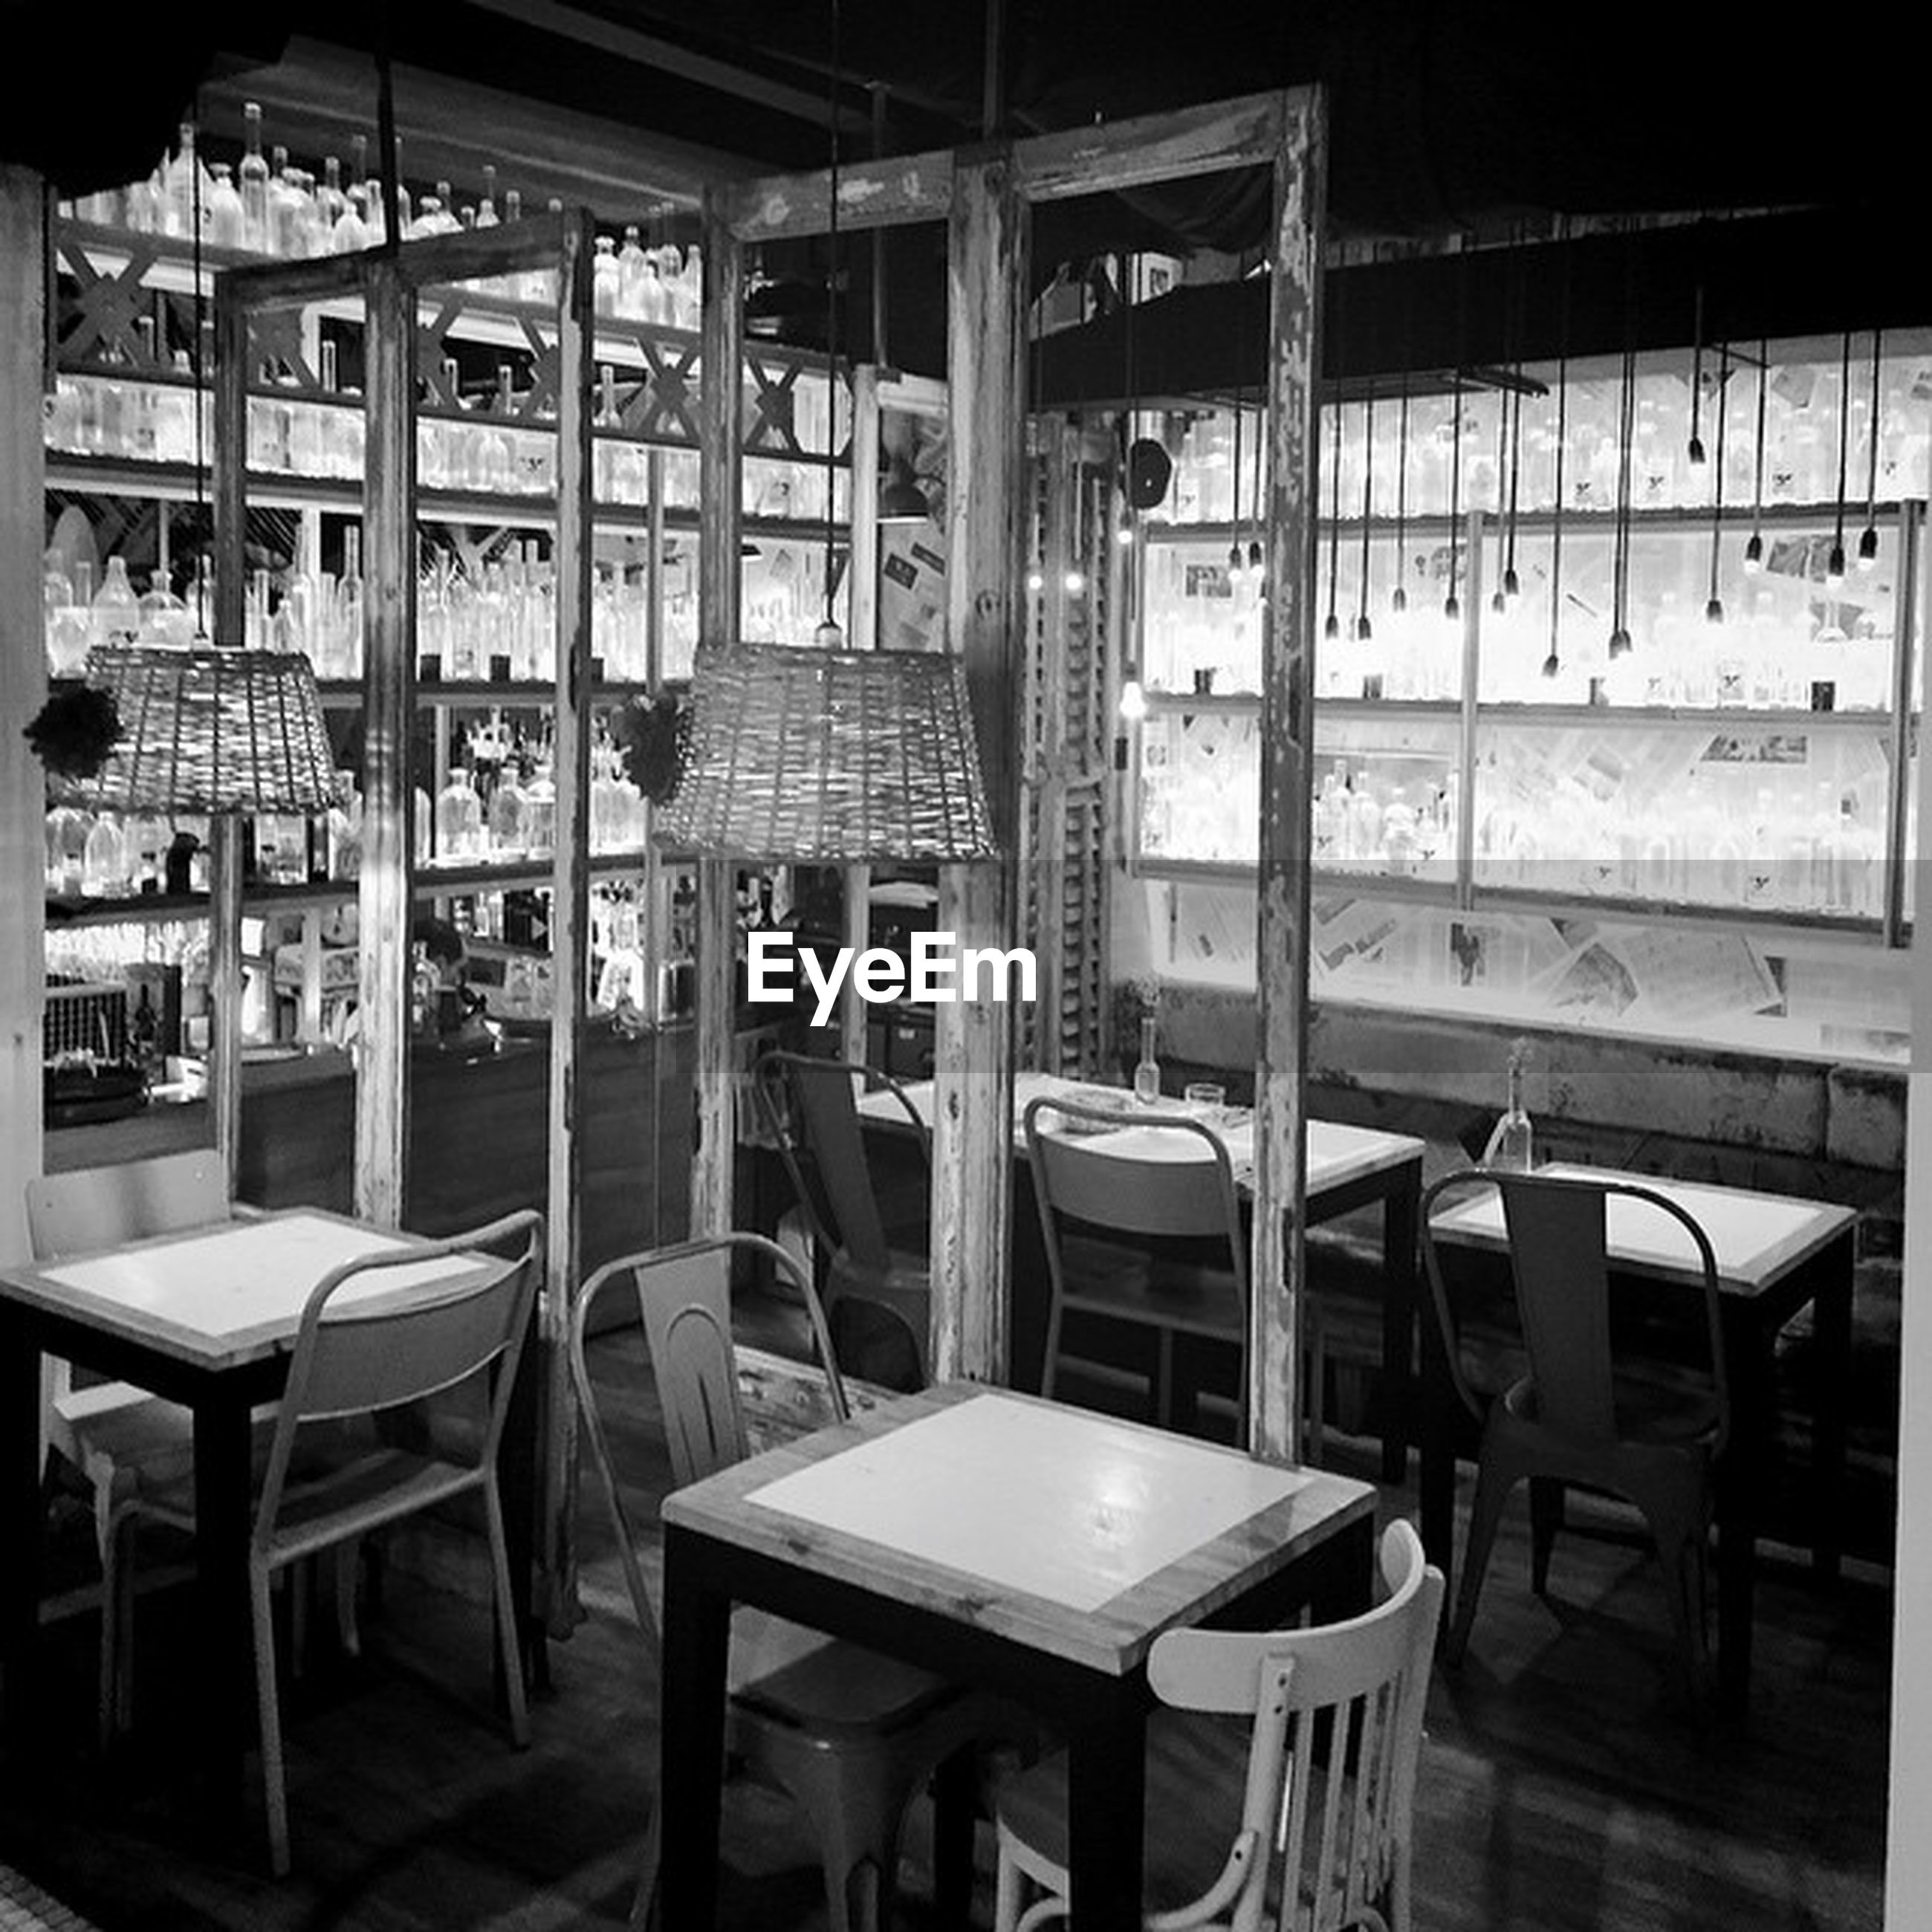 chair, absence, empty, restaurant, shelf, arrangement, interior, in a row, furniture, seat, no people, food and drink industry, day, repetition, side by side, bookshelf, illuminated